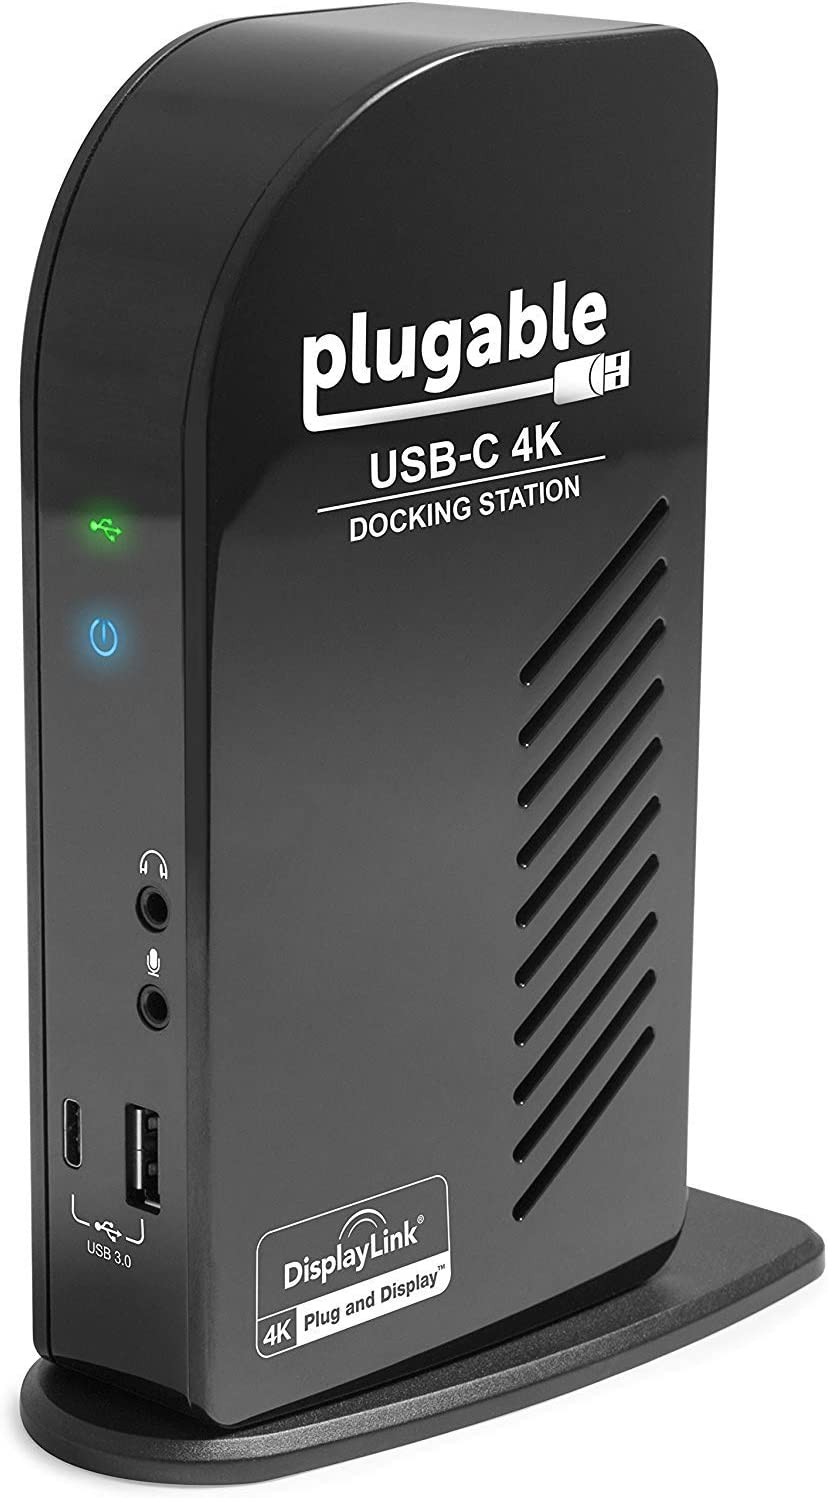 Plugable USB-C 4K Triple Display Docking Station with Charging Support for Specific Windows USB C and Thunderbolt 3 Systems (1x HDMI and 2X DisplayPort++ Outputs, 5X USB Ports, 60W USB PD)